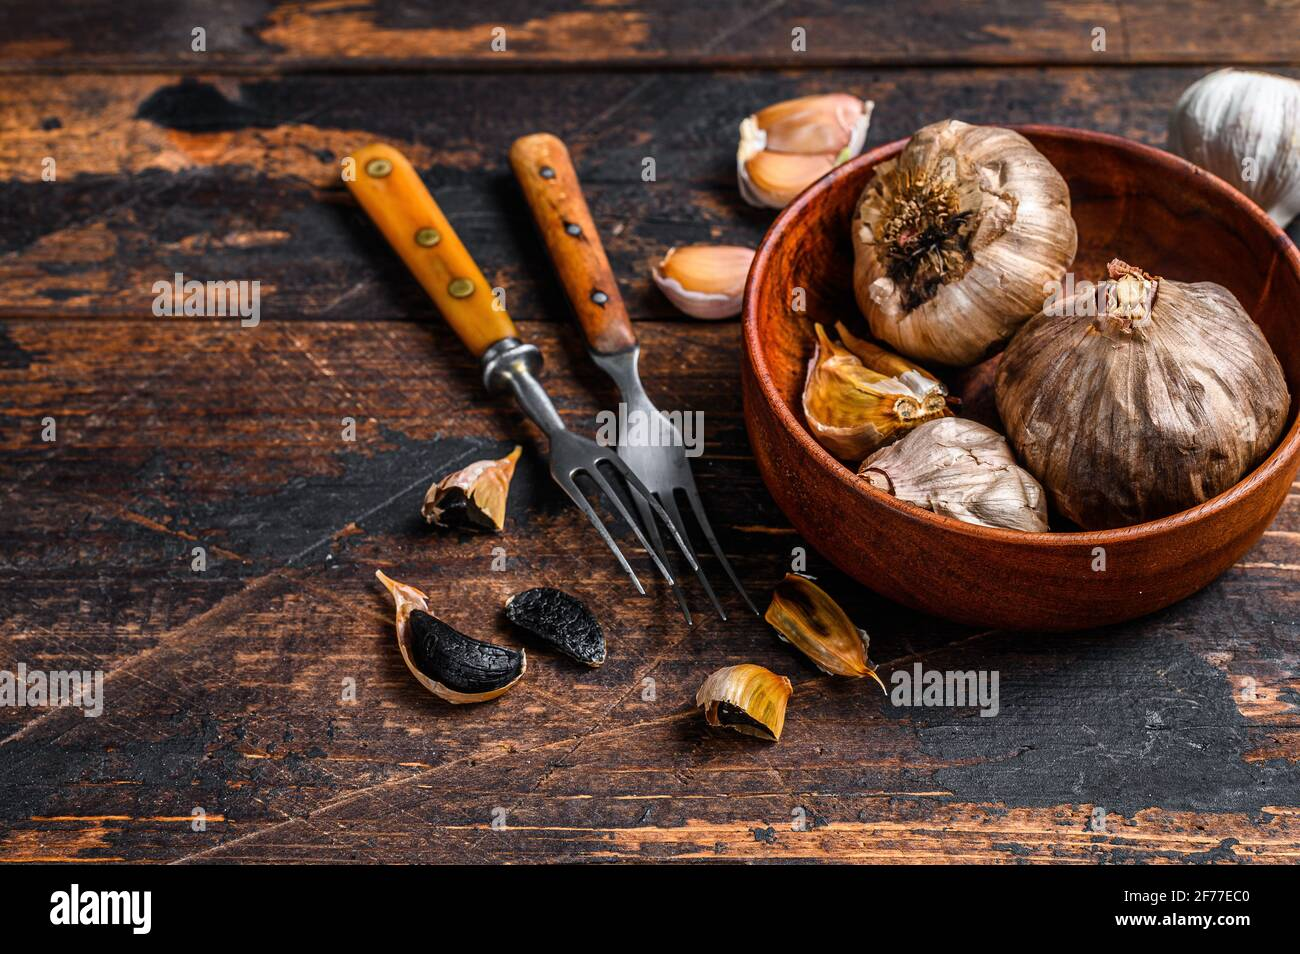 Bulbs and cloves of fermented black garlic in a plate. Dark wooden background. Top view. Copy space Stock Photo